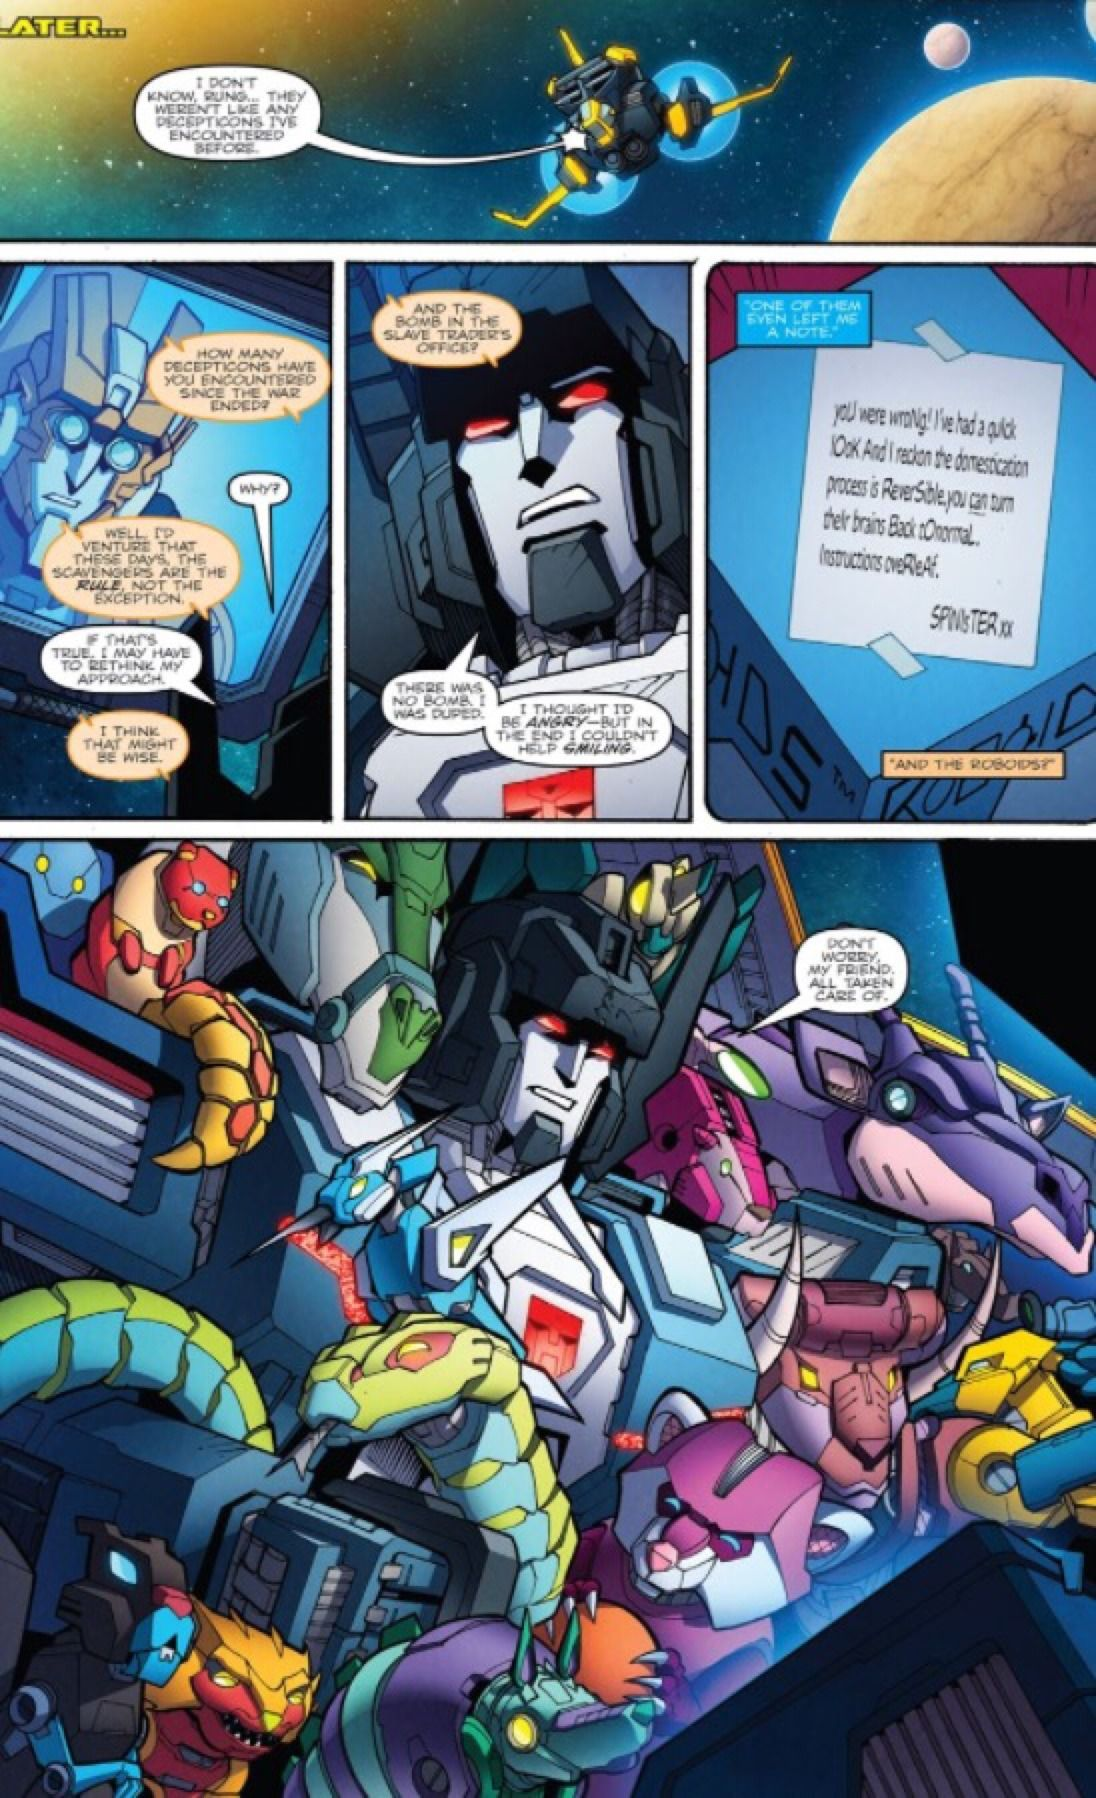 Jack Darby Becomes Rodimus Prime Fanfiction – Free Download Game